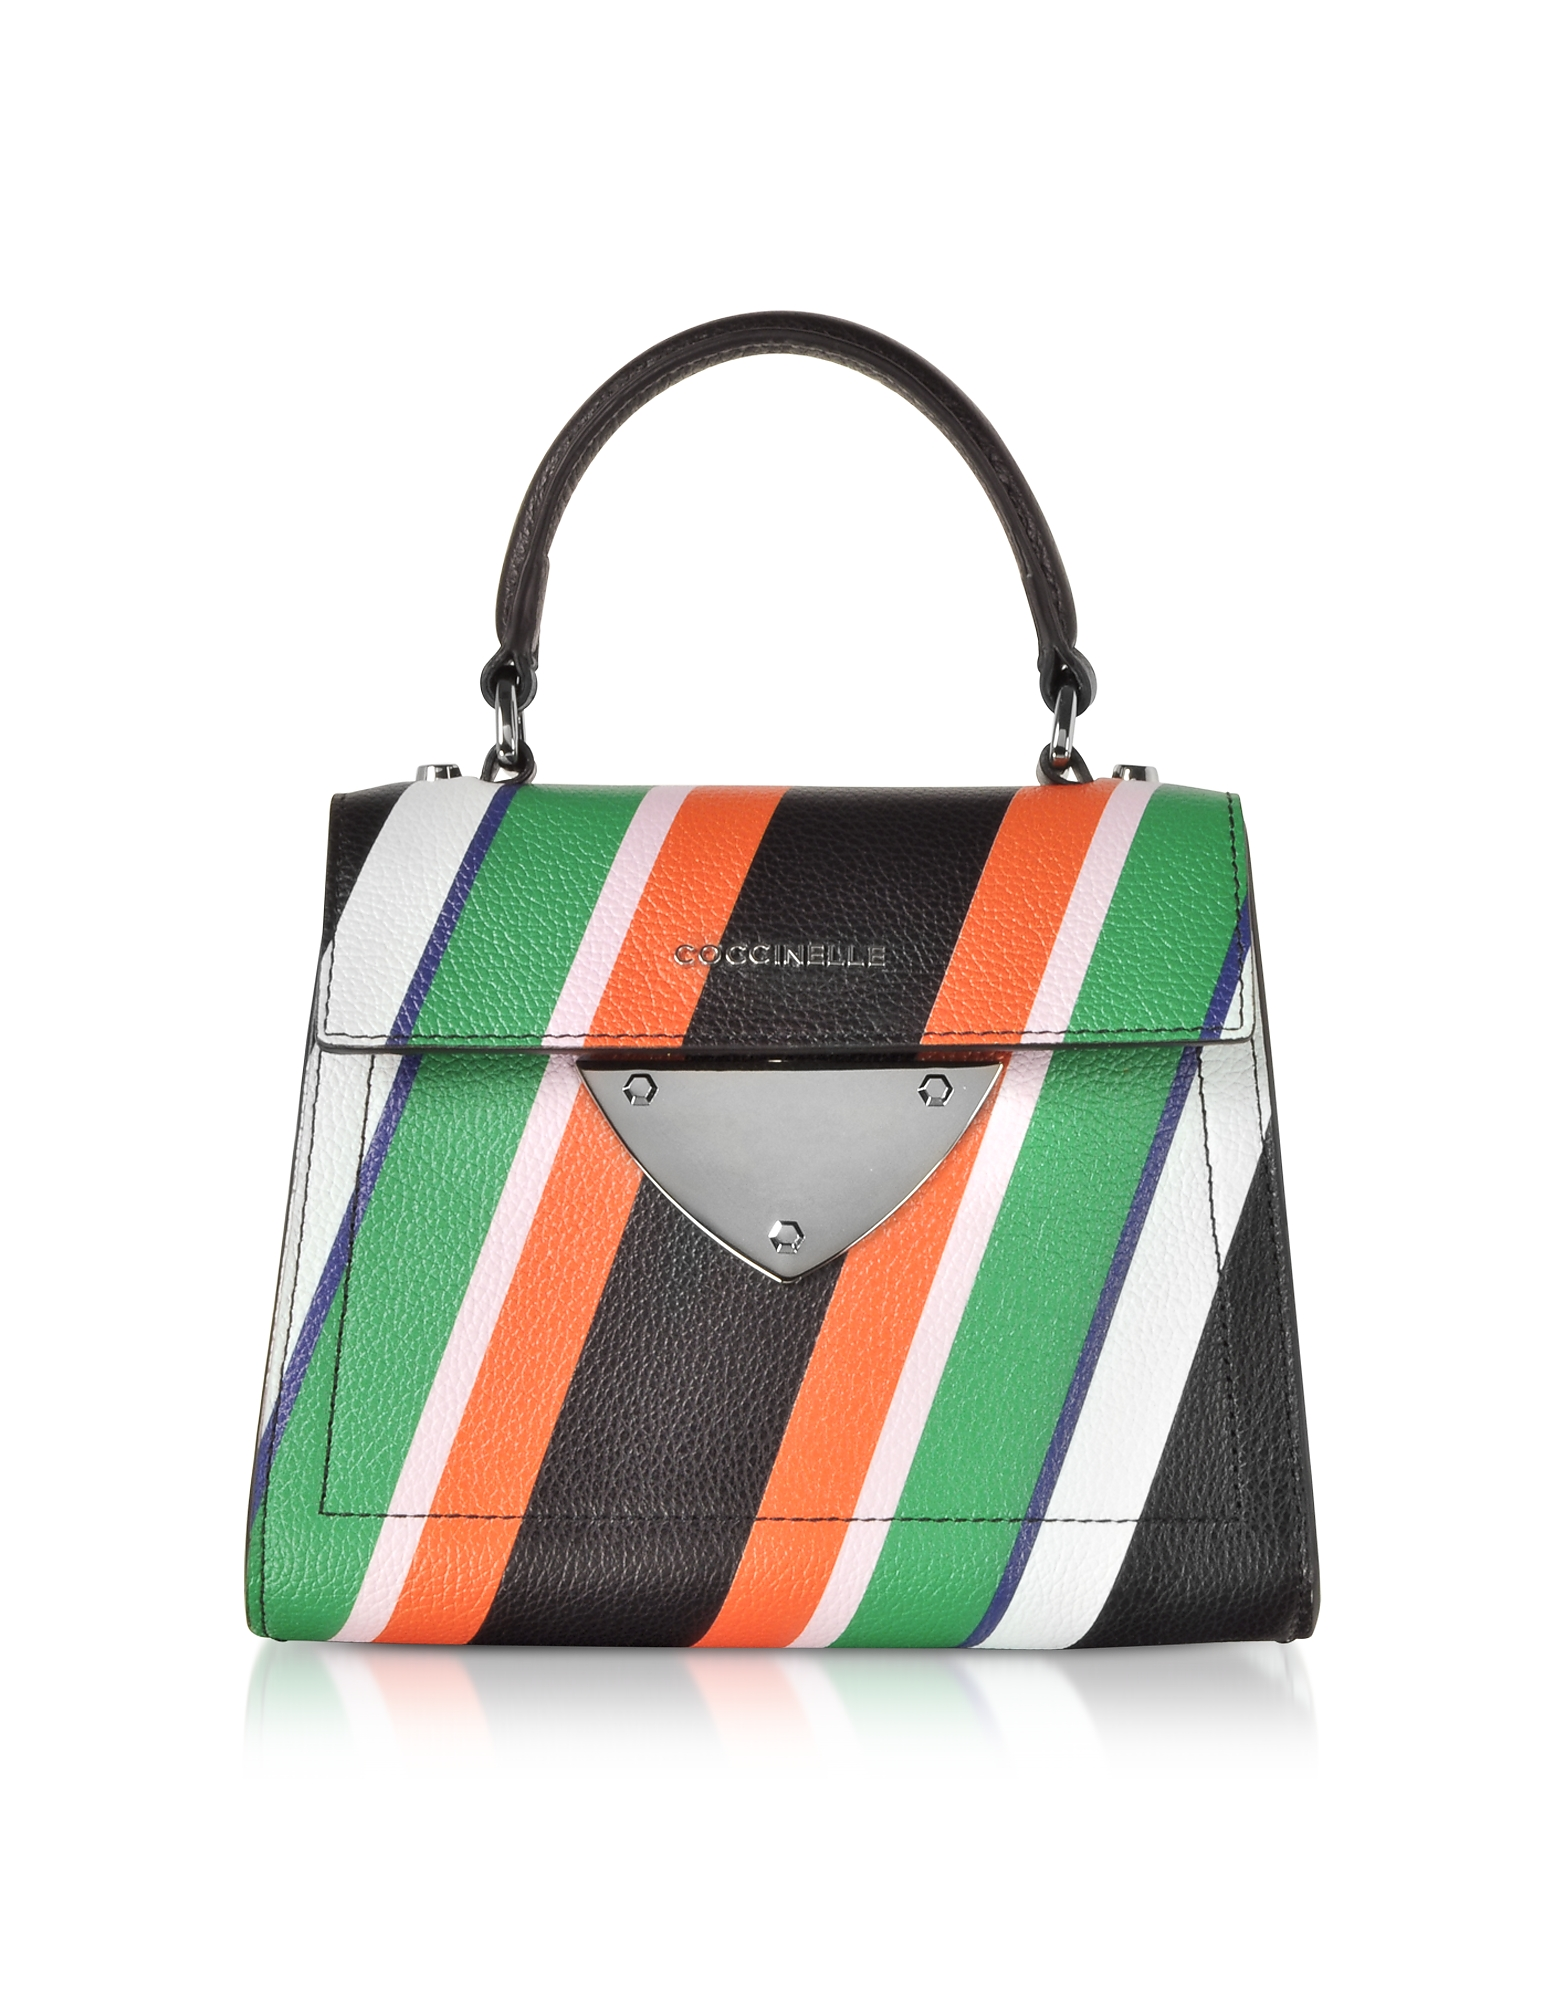 Coccinelle Handbags, B14 Stripes Printed Leather Satchel Bag